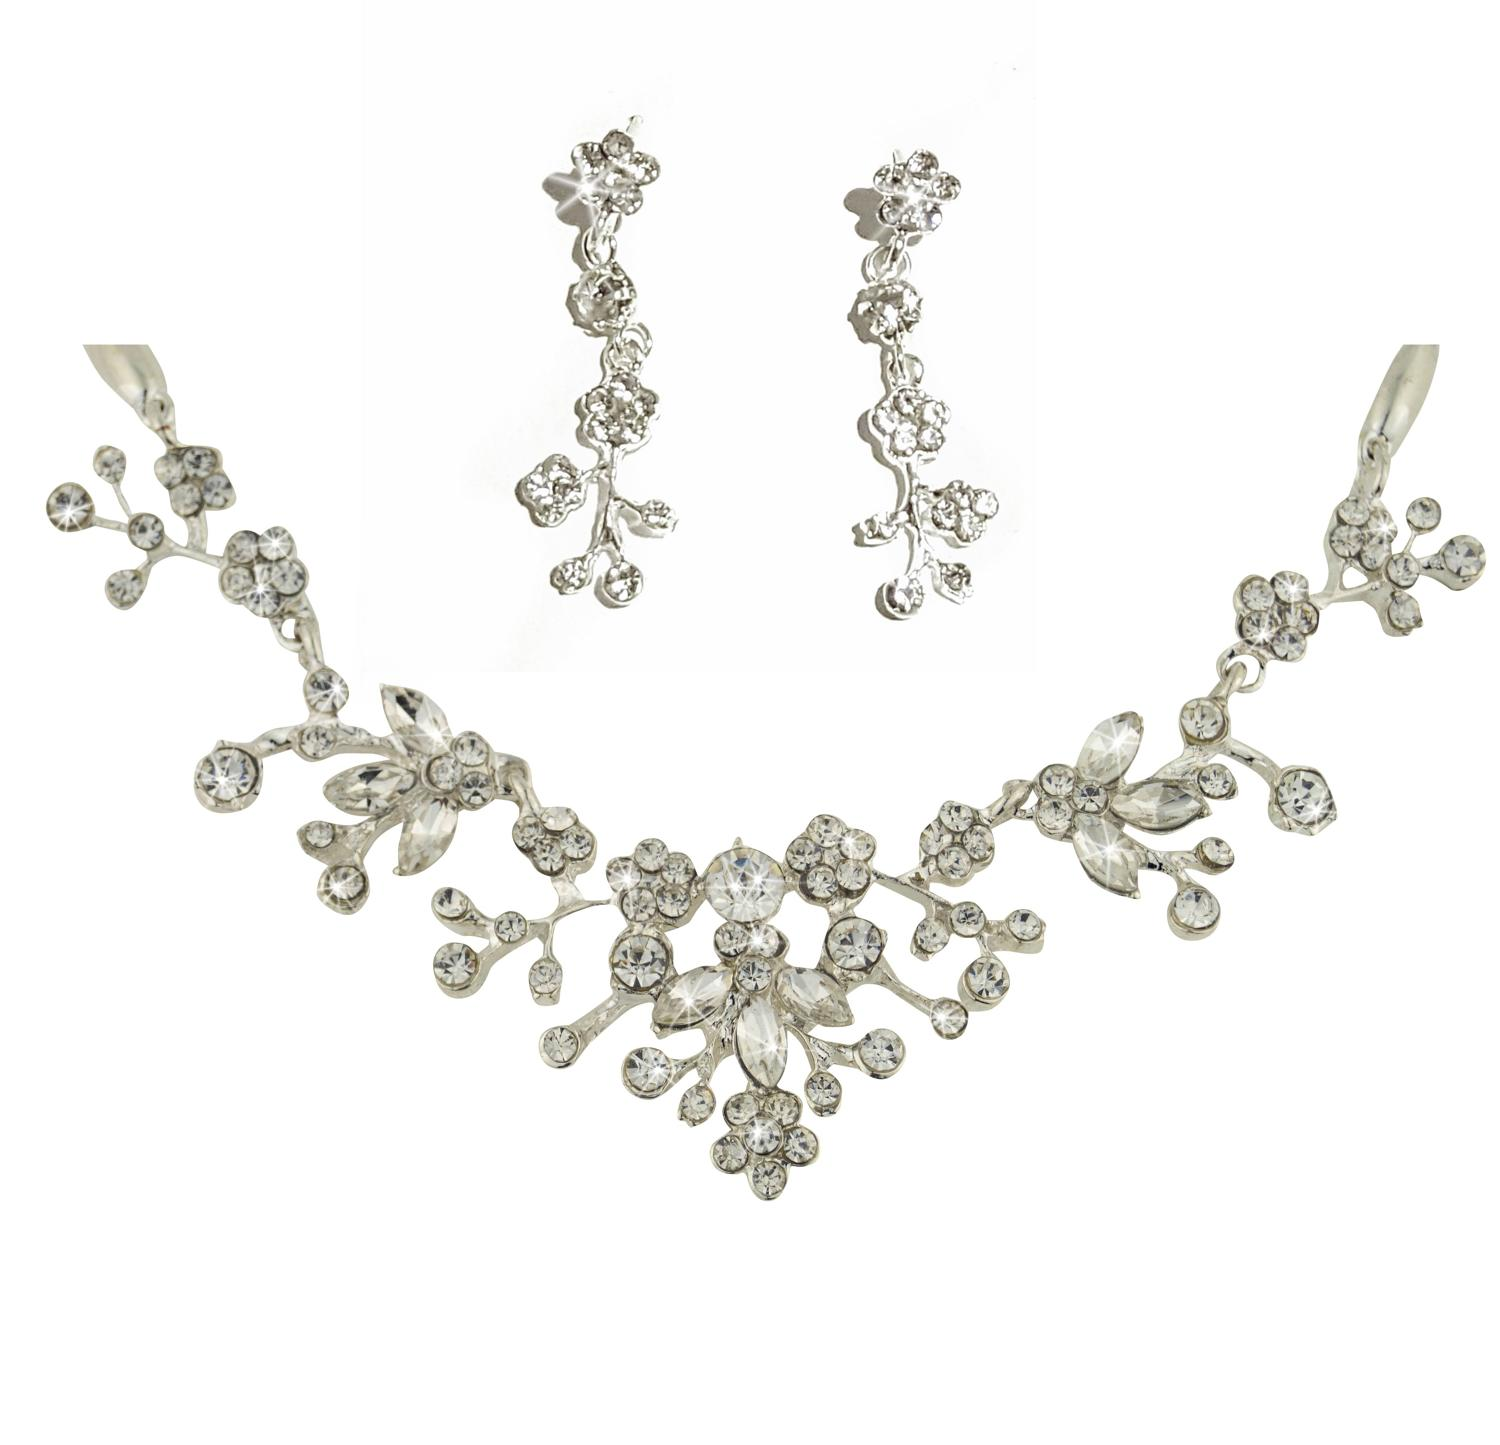 Intricate Flower & Leaf Crystal Necklace & Earring Set